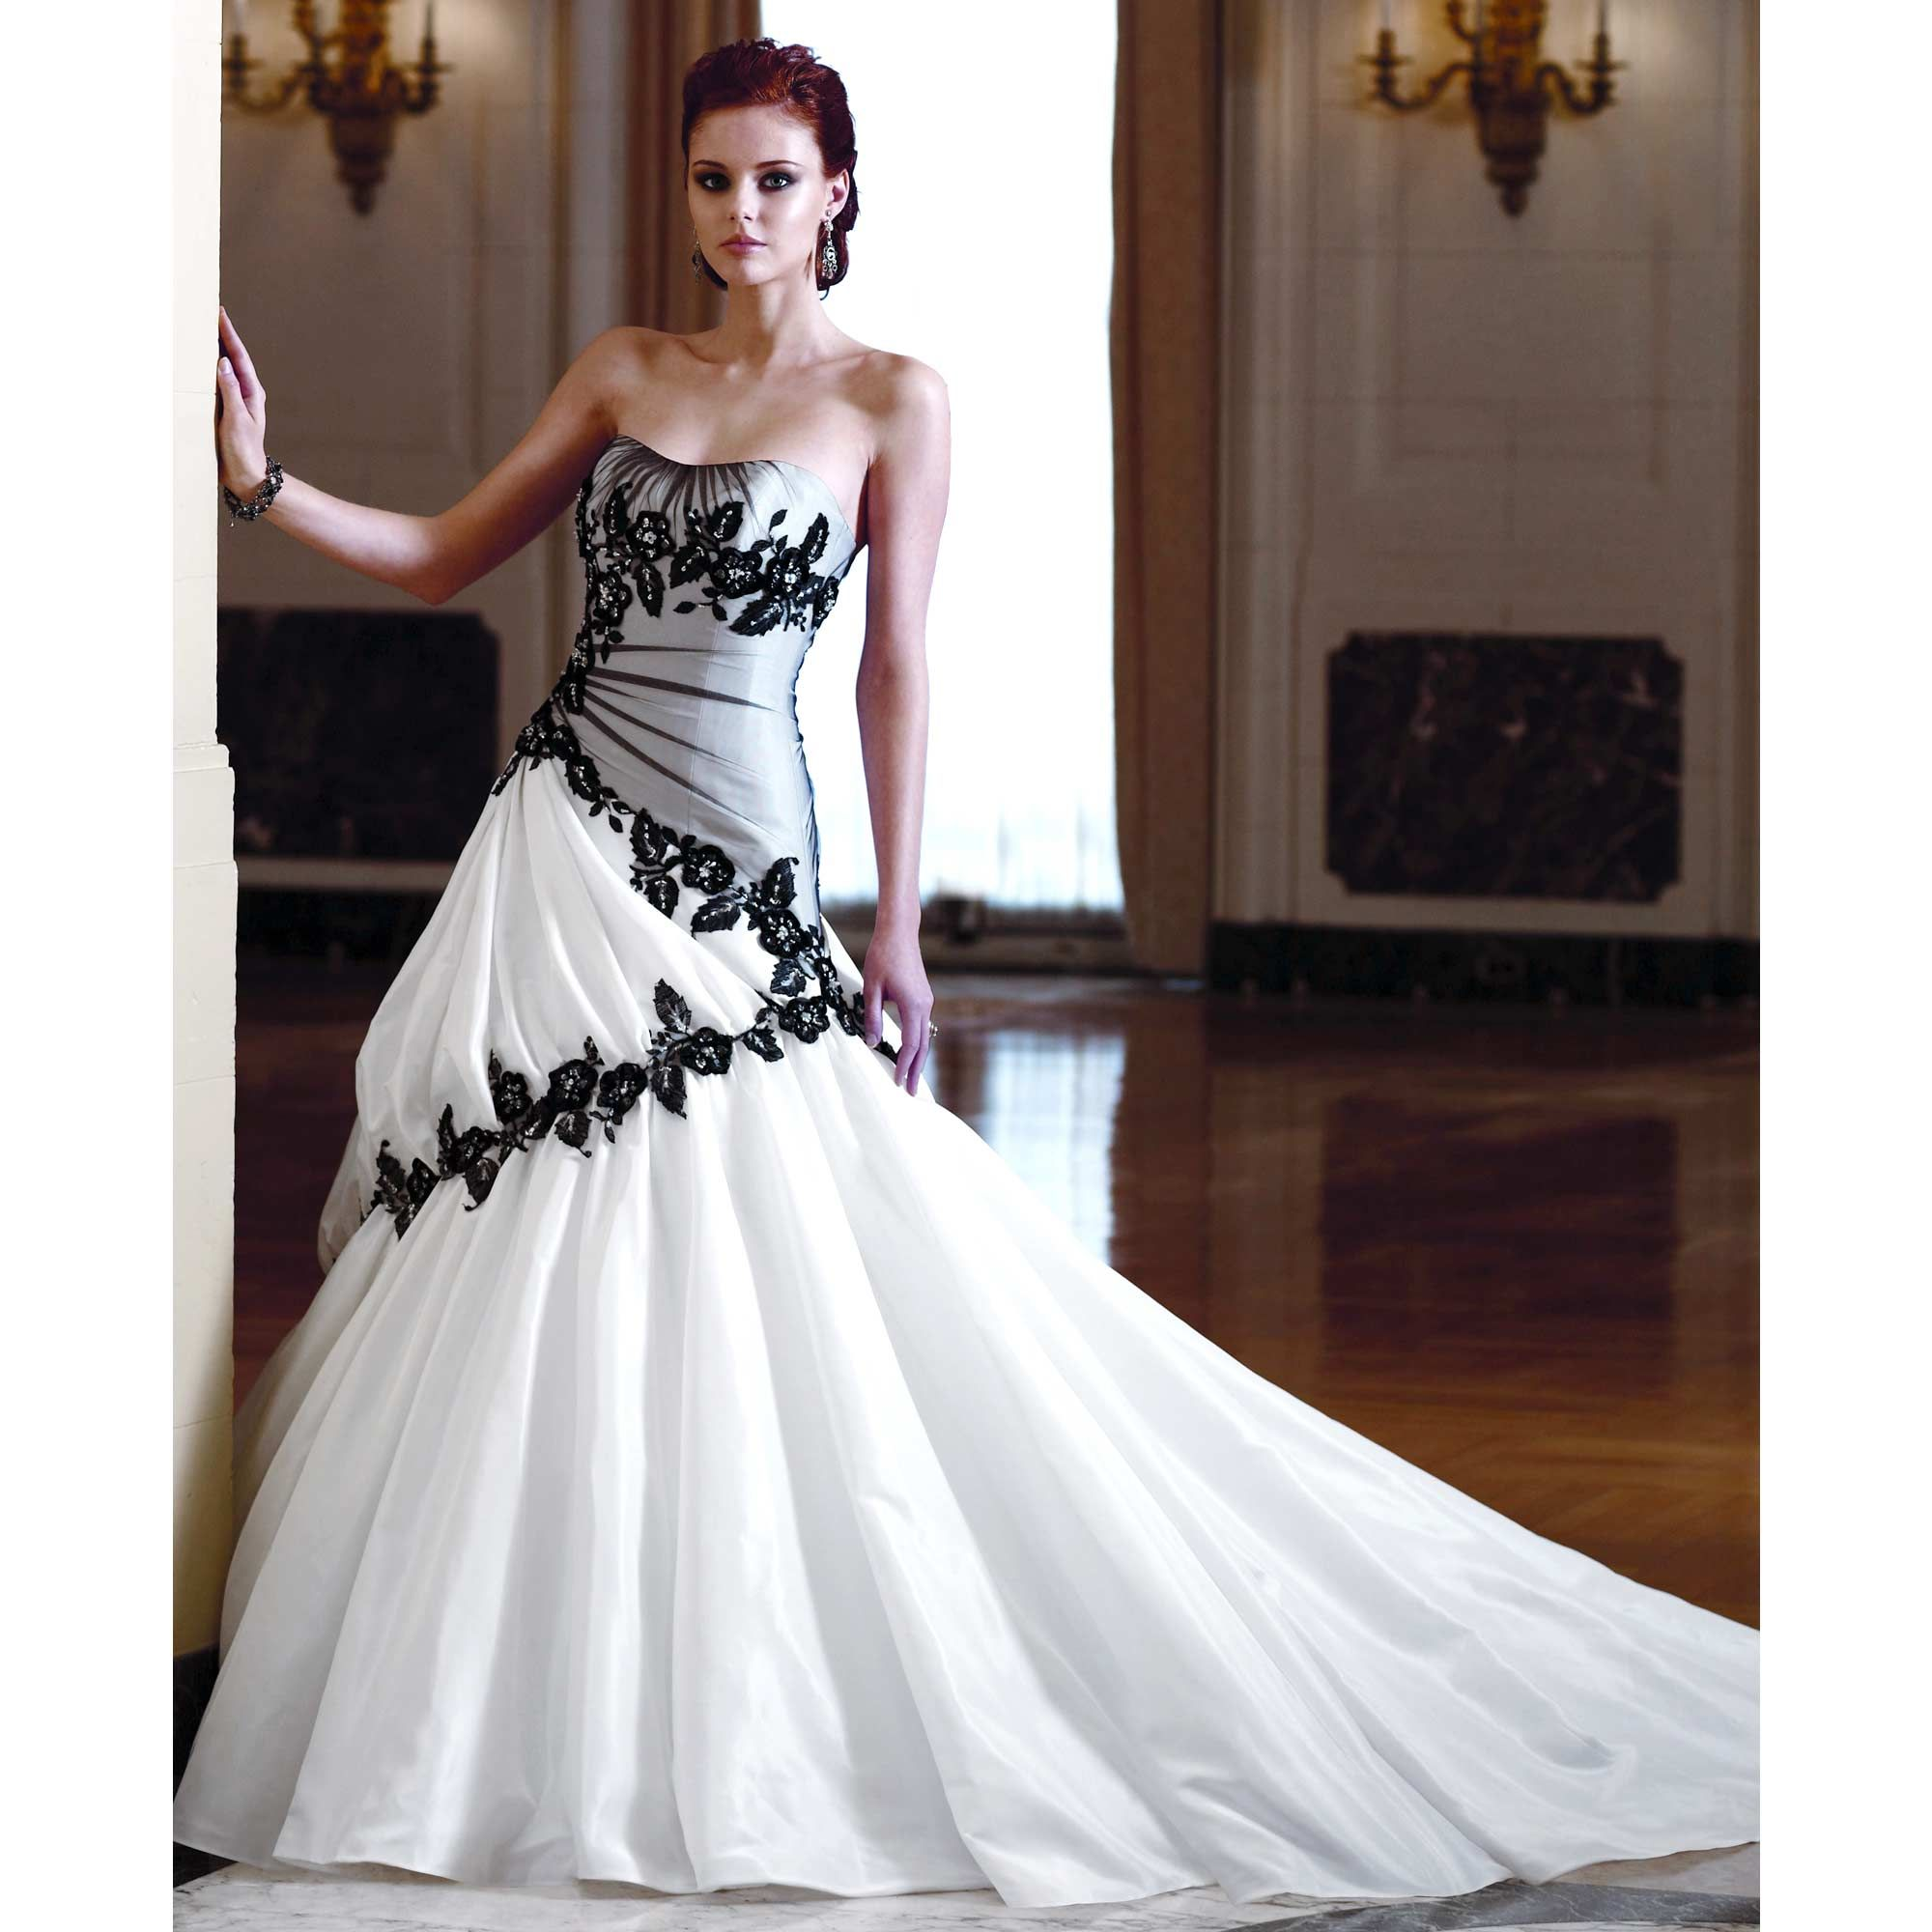 Love This Dress Also Maybe Some Black Instead Of All Something To Think About Lol